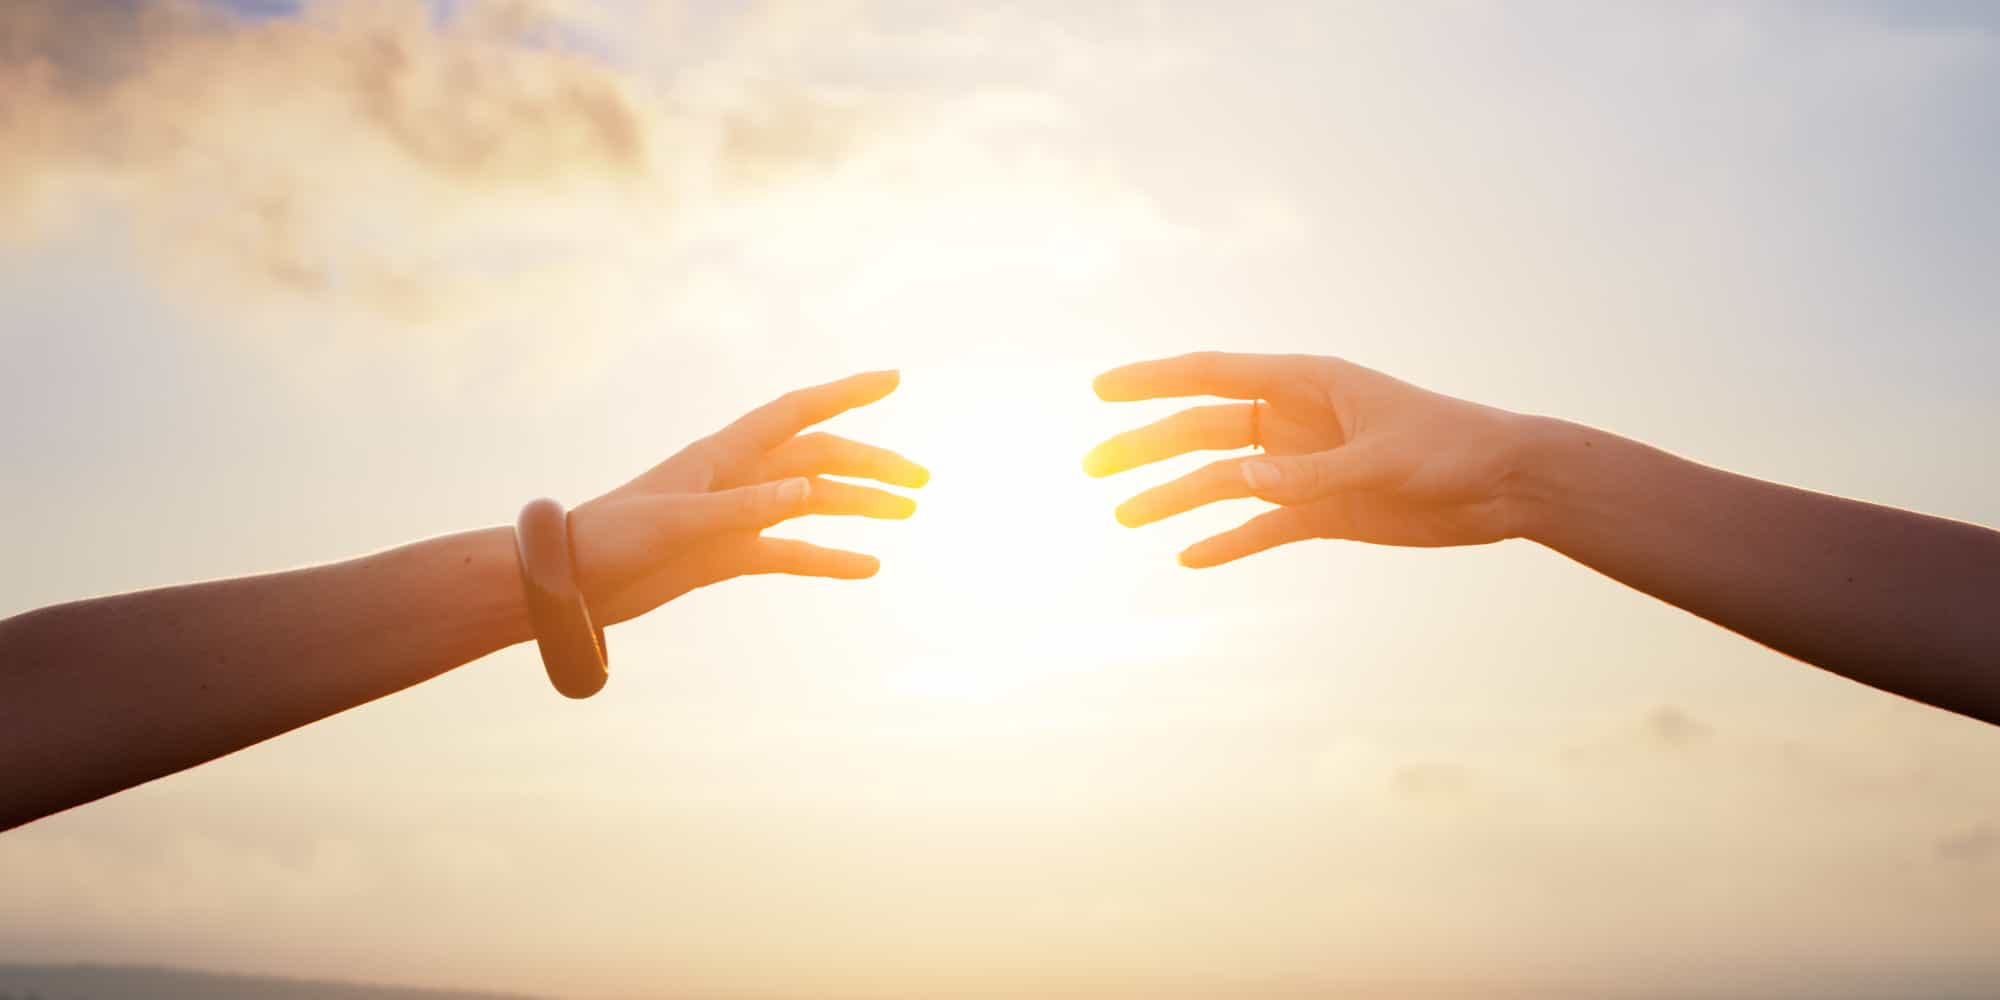 Top 10 Reasons That Spirituality Matters in Daily Life